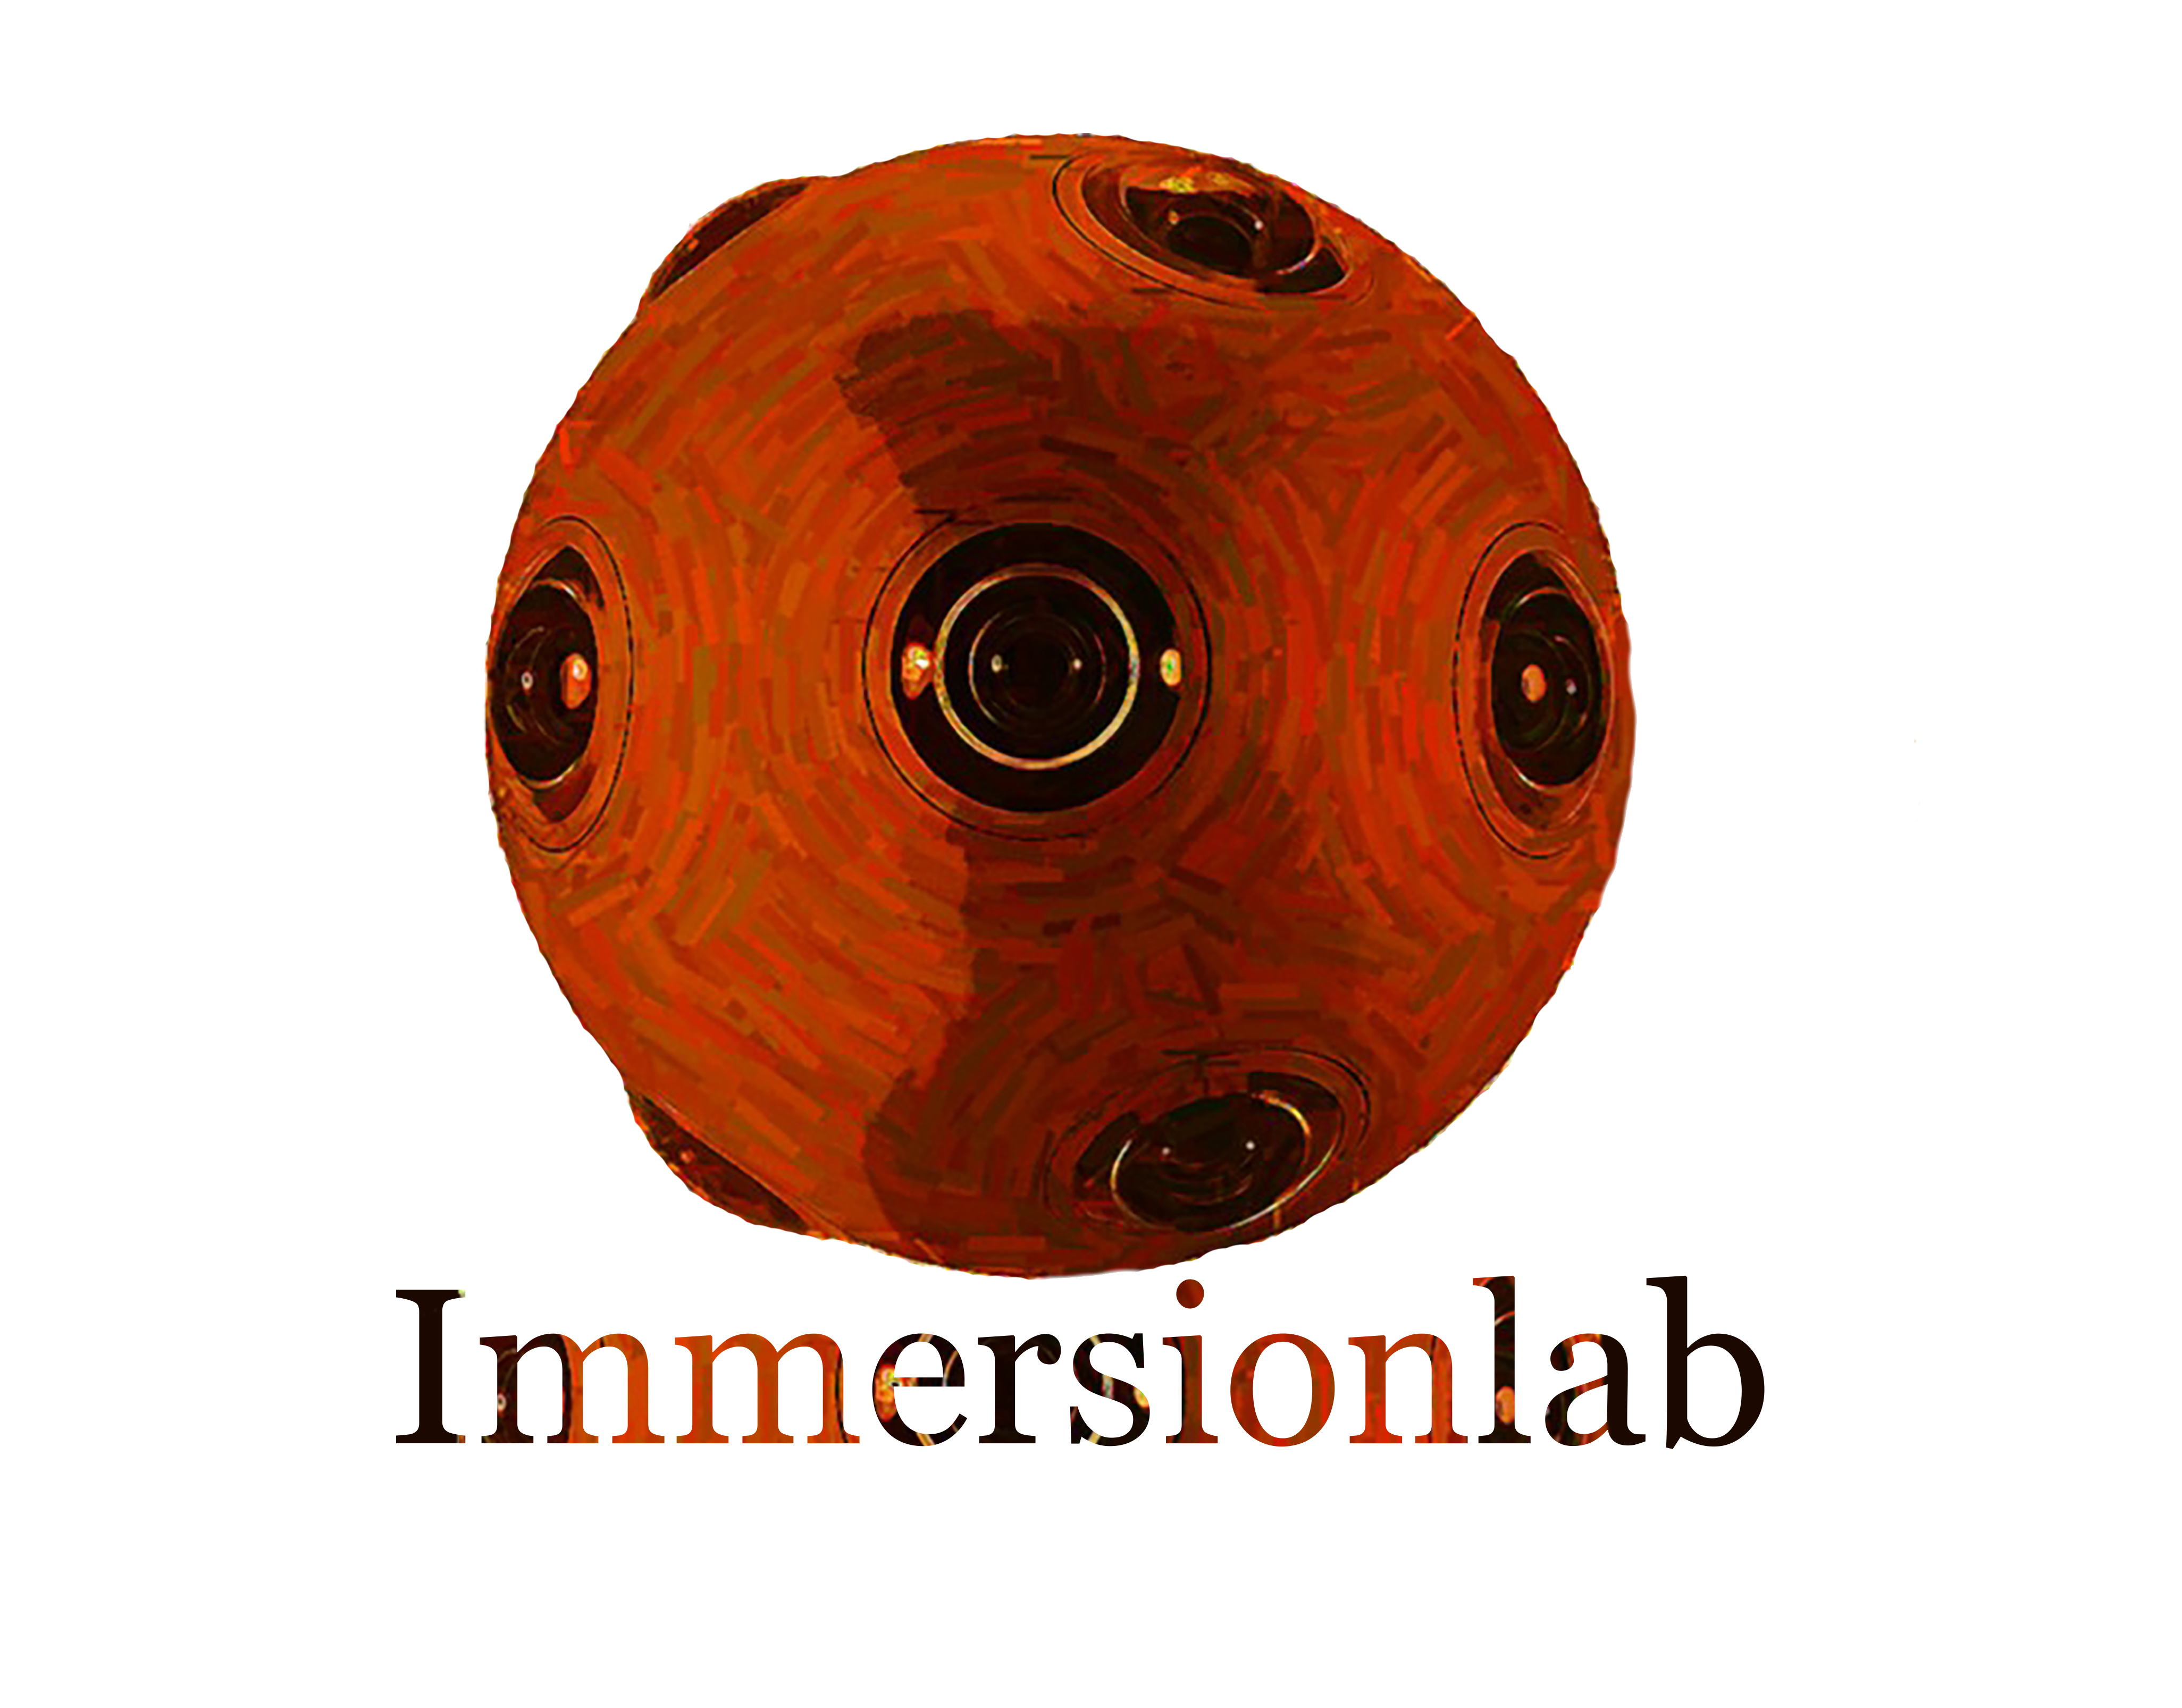 Immersionlab_logo6